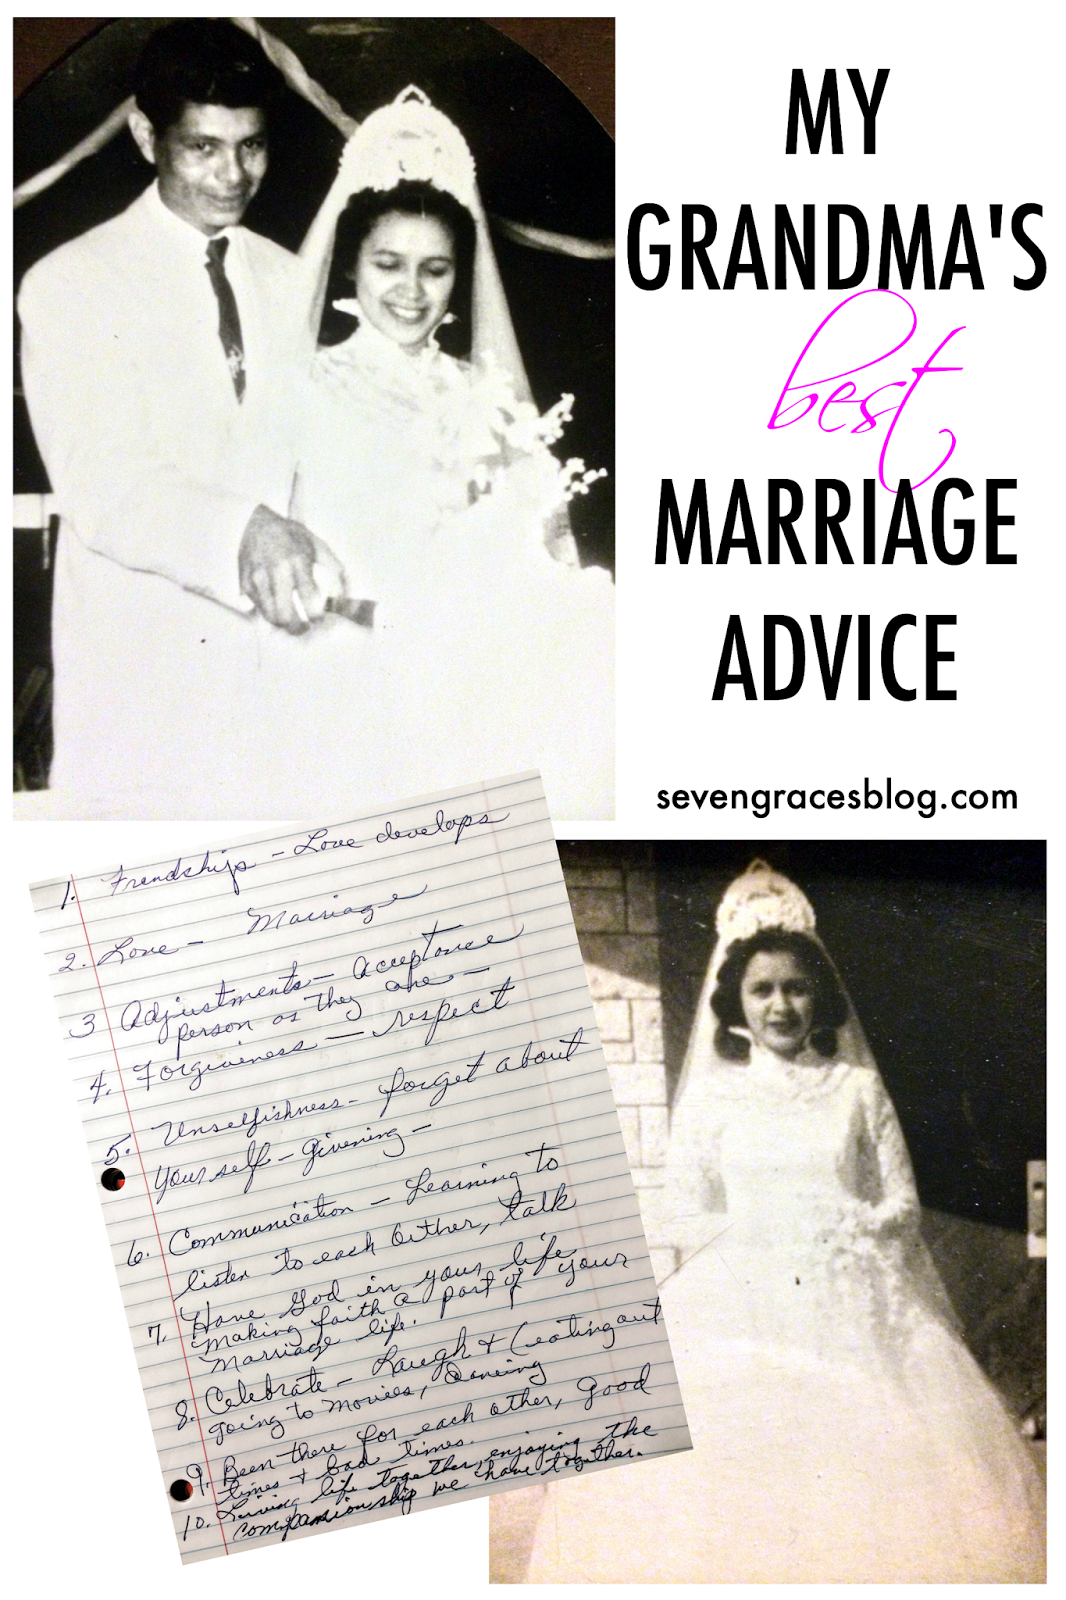 My Grandma Sayings: My Grandma's Best Marriage Advice